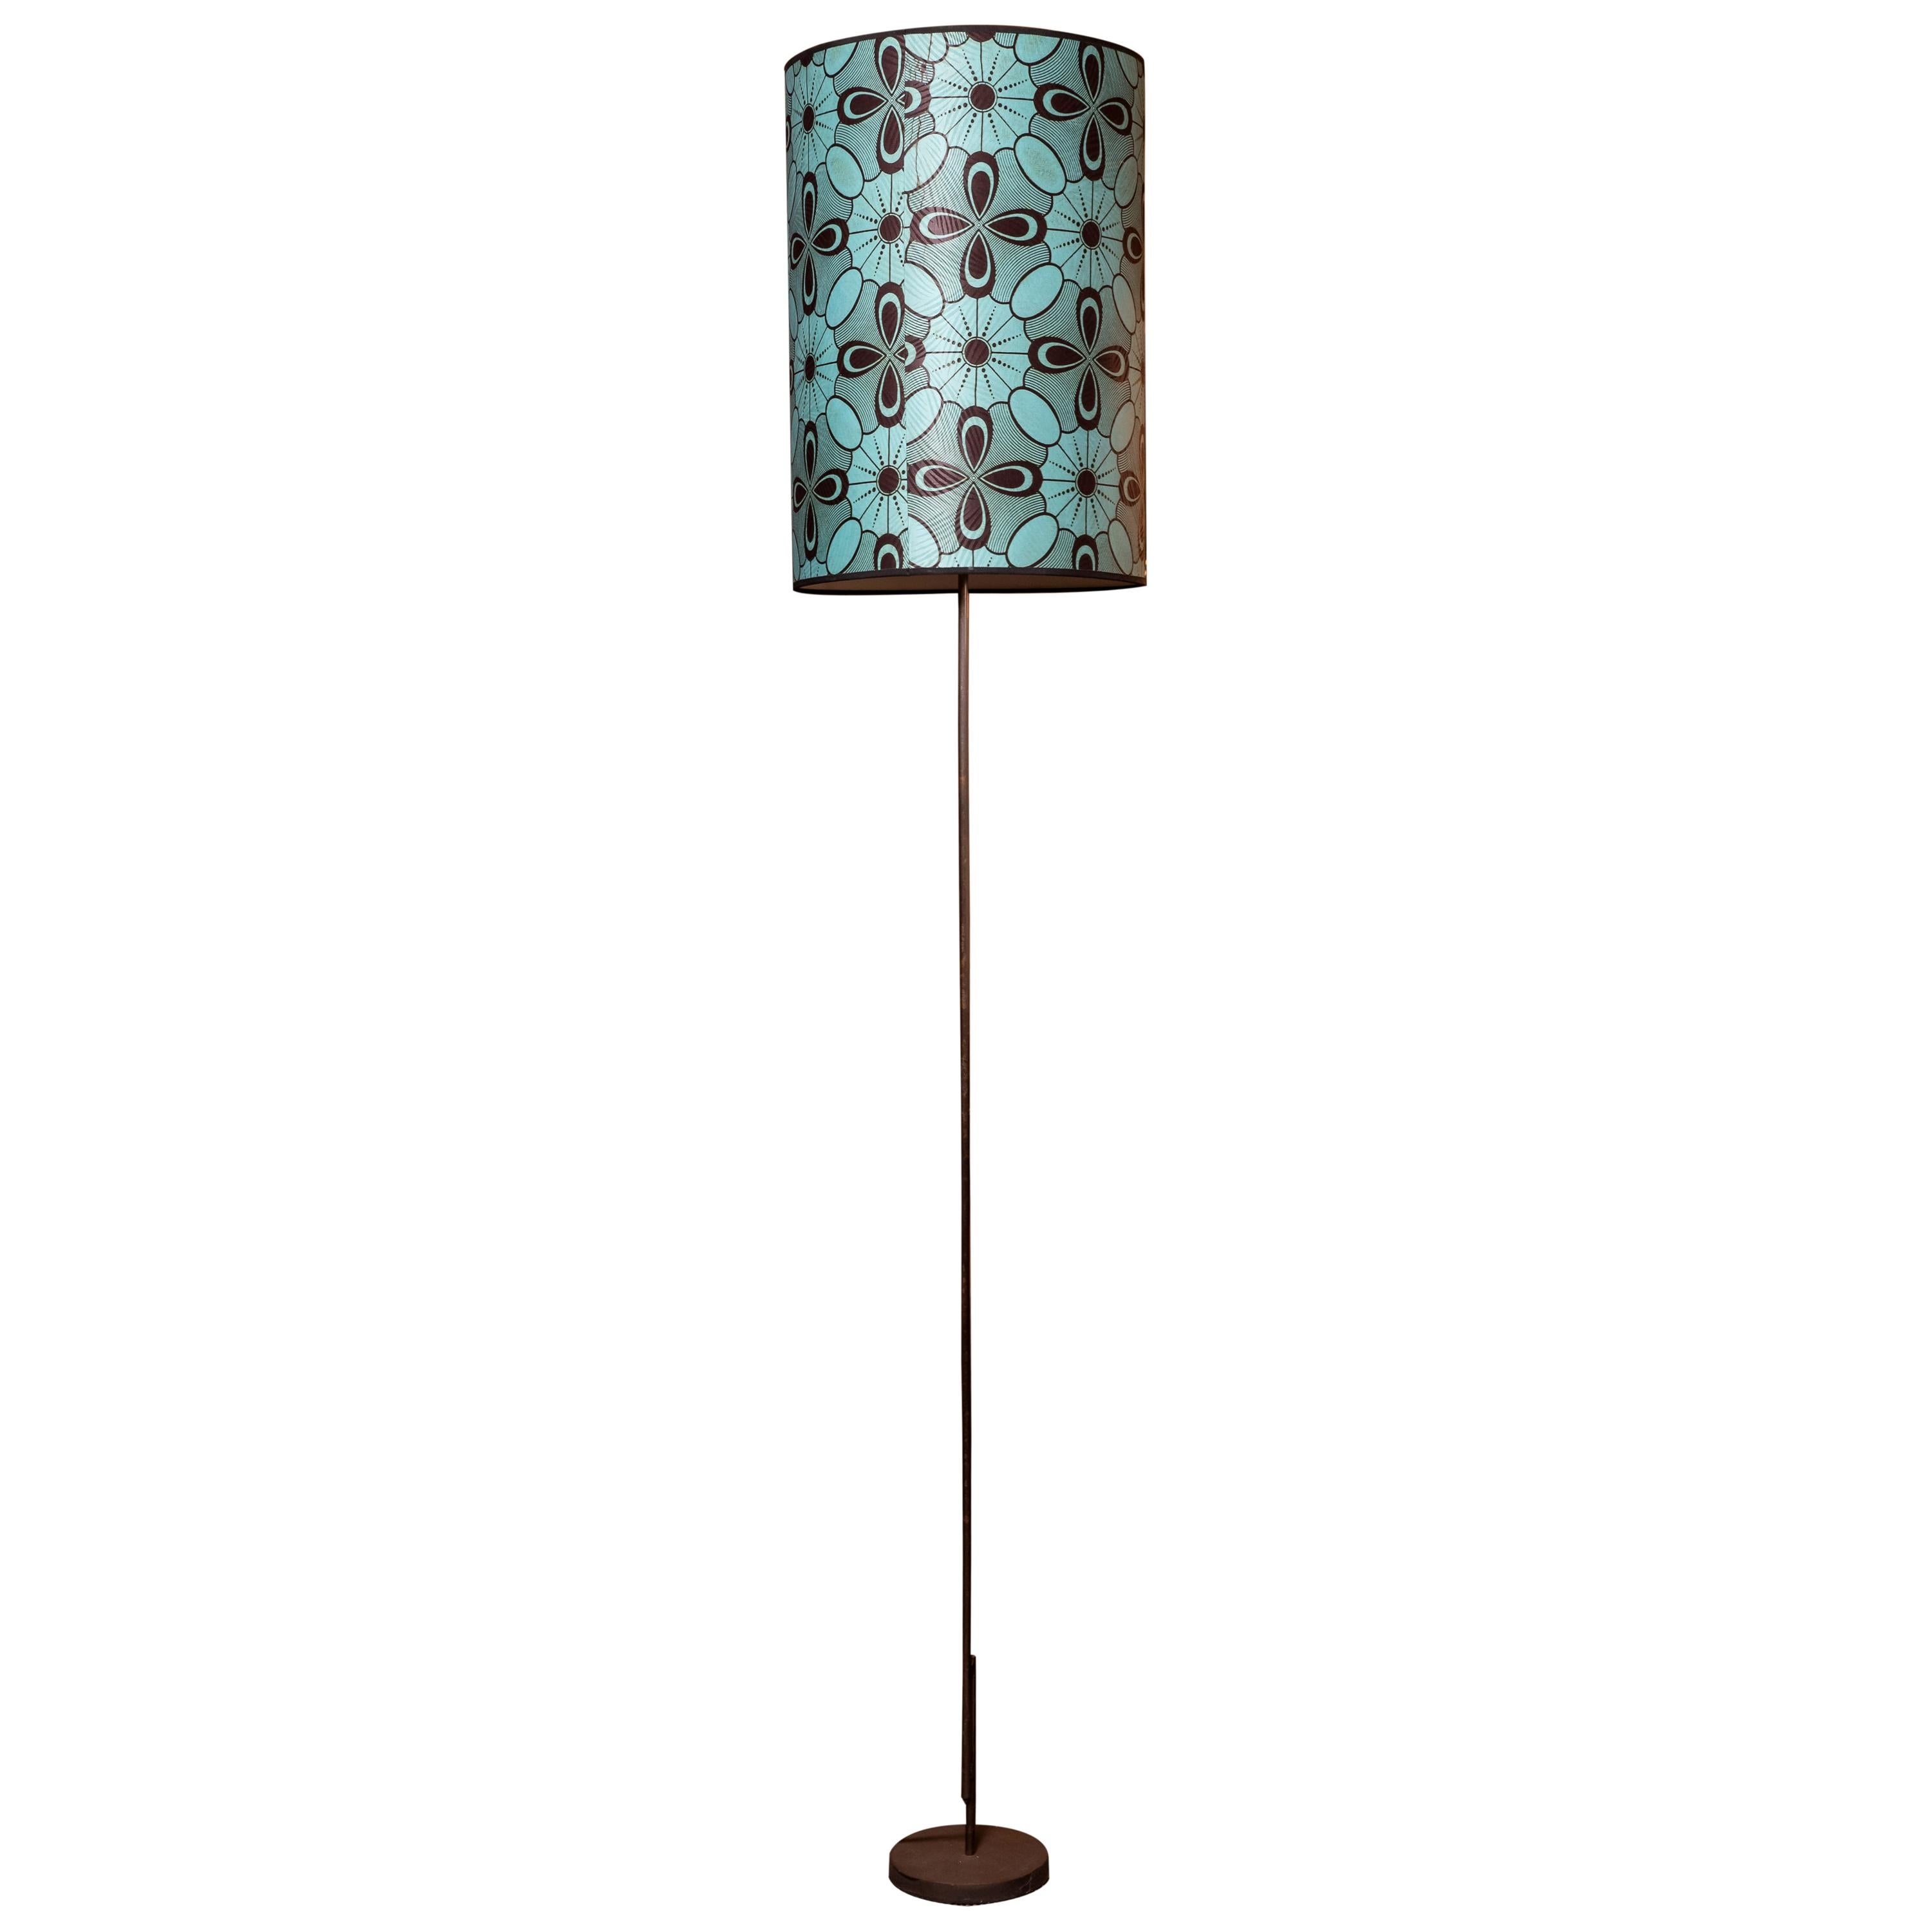 20th Century Metal Floor Lamp Attributed to Franz West